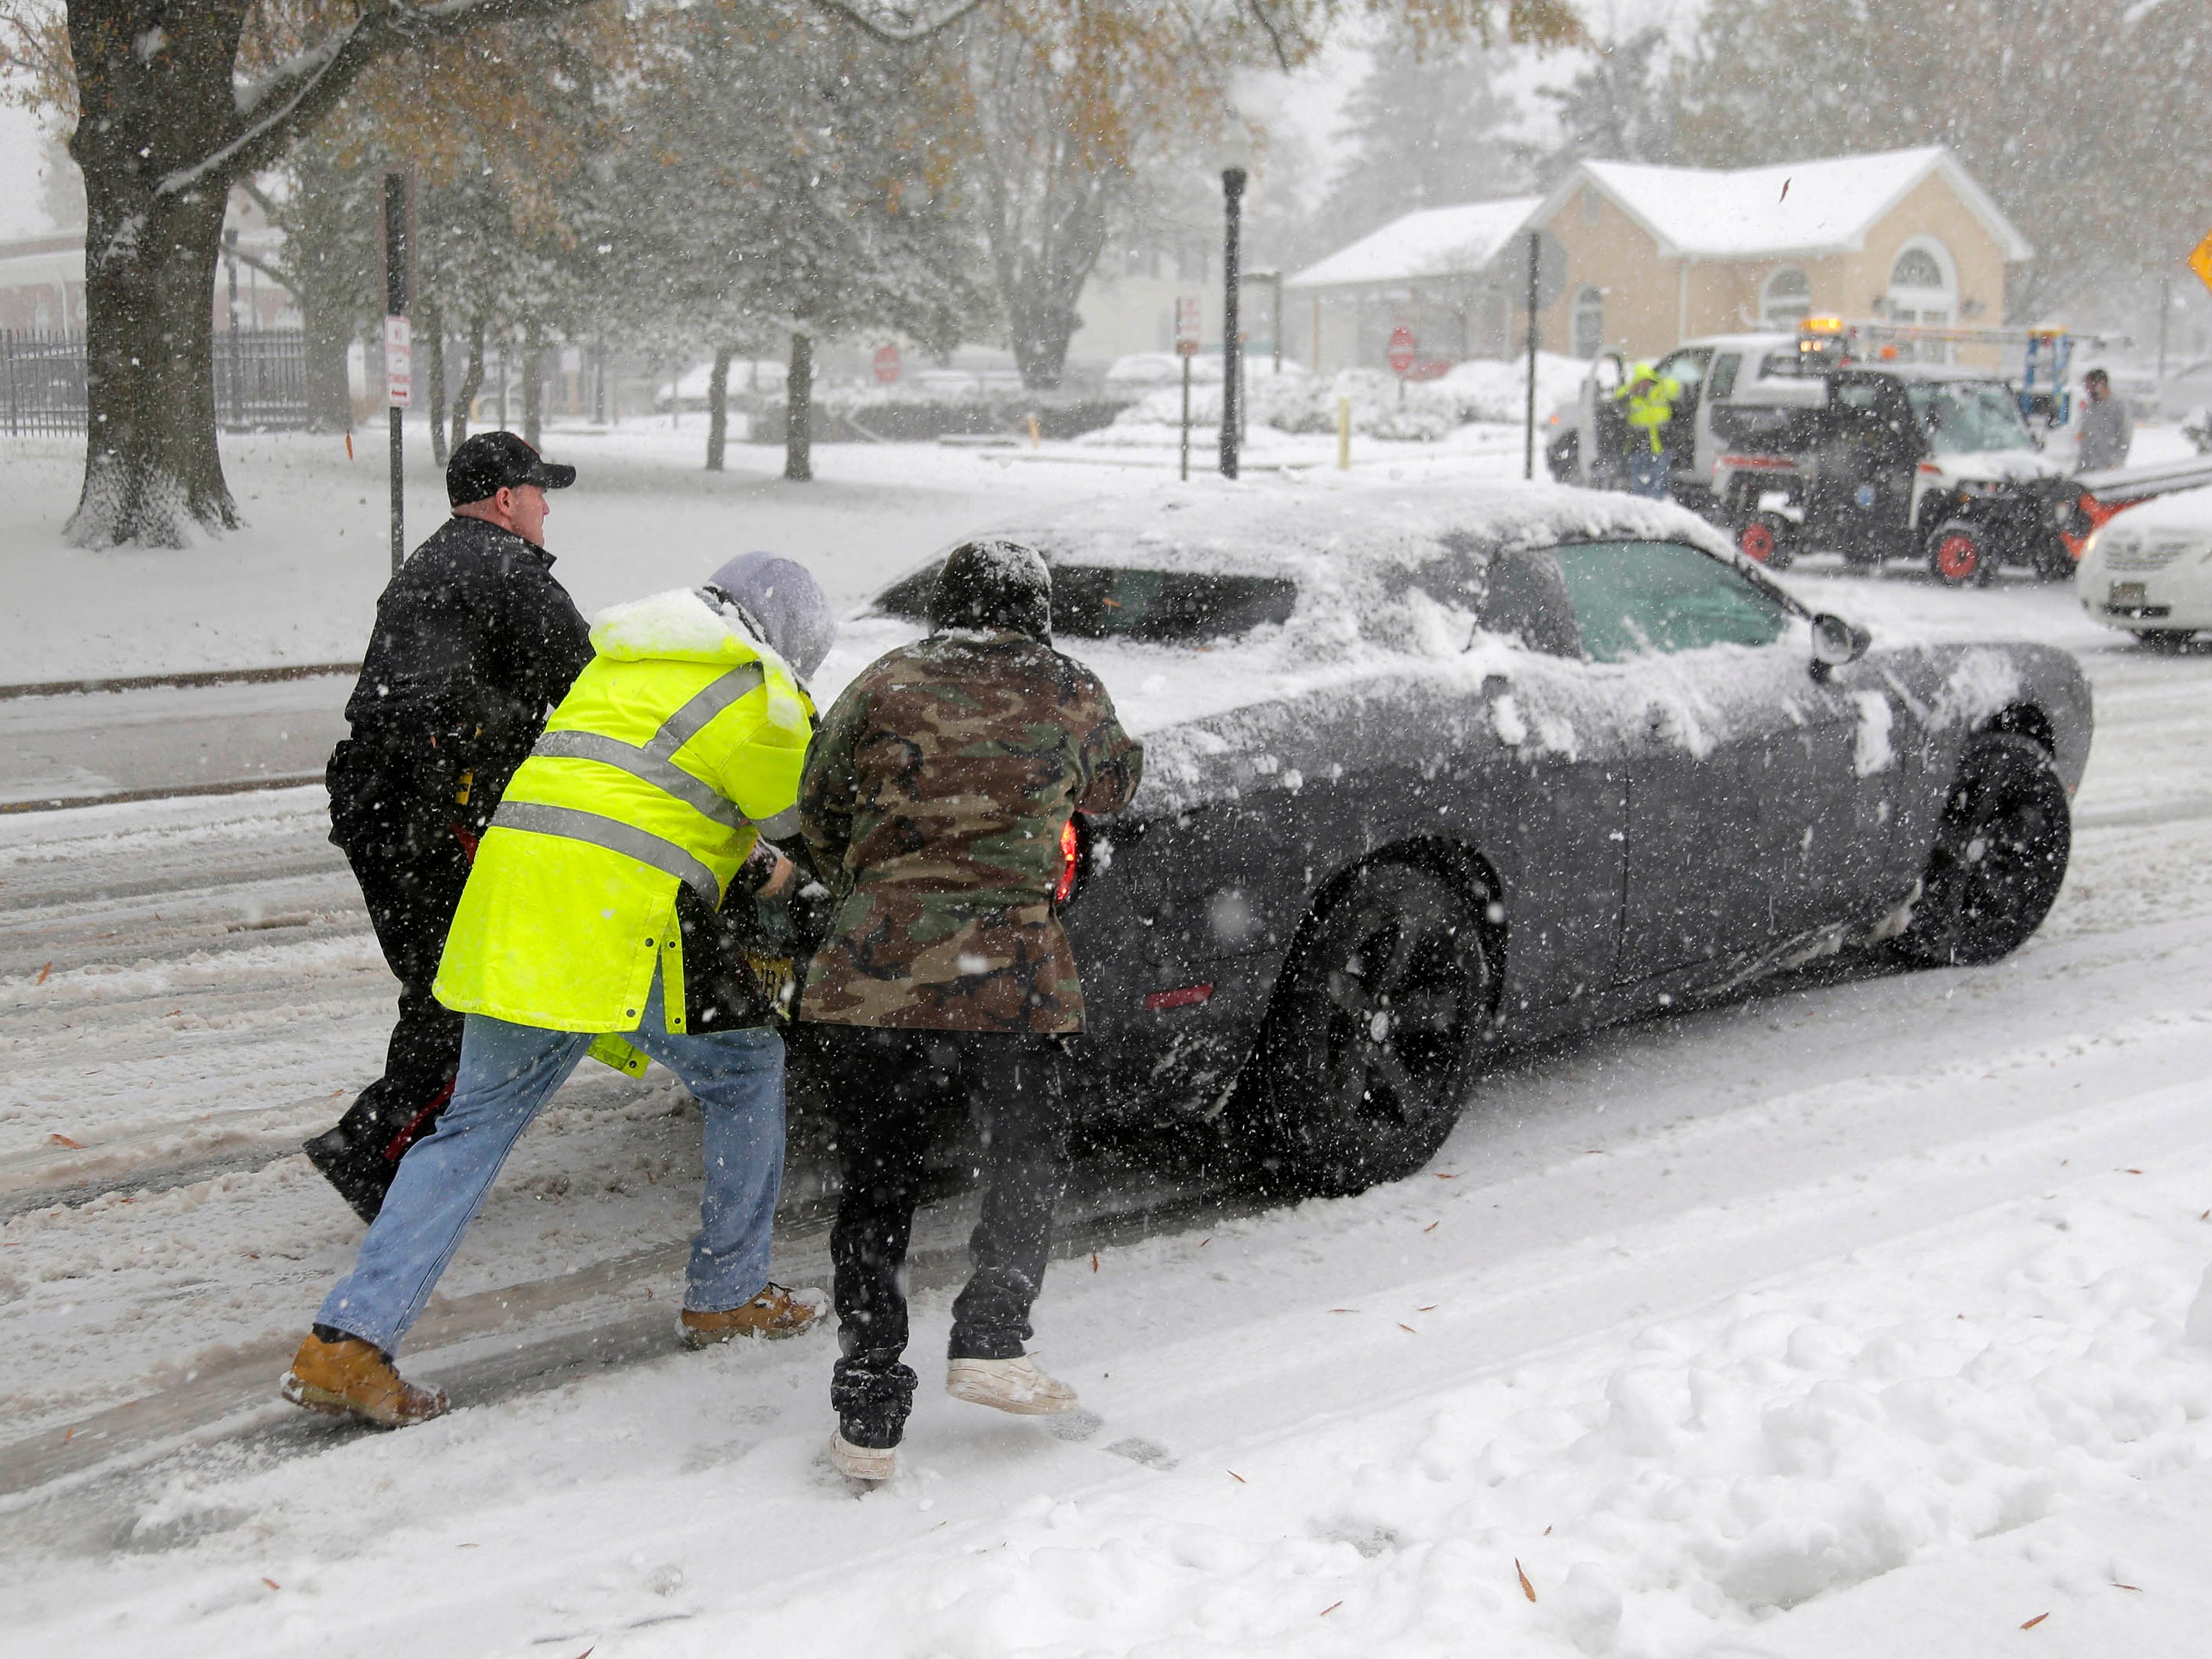 A police officer and others help push a car that was unable to gain traction on the snowy roads in Mt. Holly, N.J. on Nov. 15, 2018.